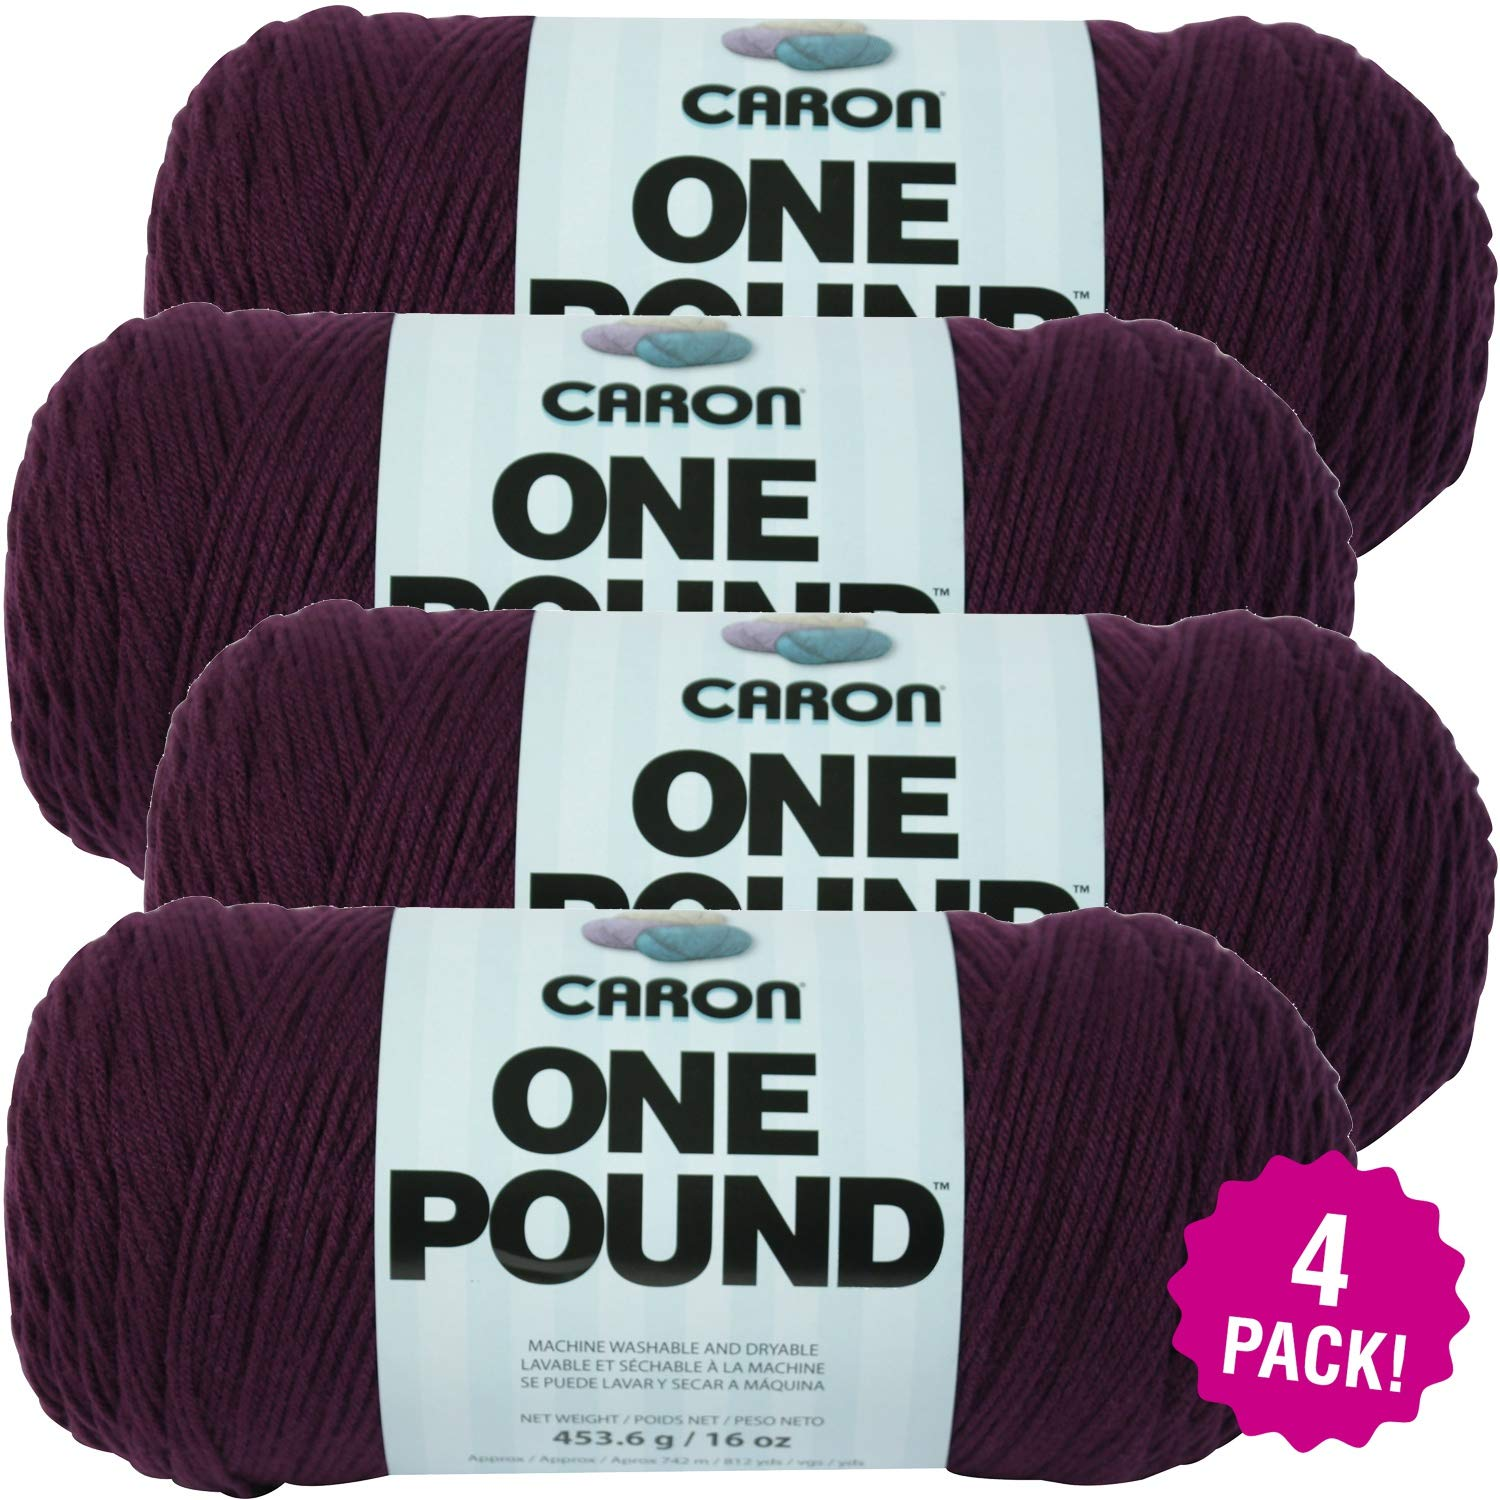 Caron 99528 One Pound Yarn-Deep Violet, Multipack of 4, Pack